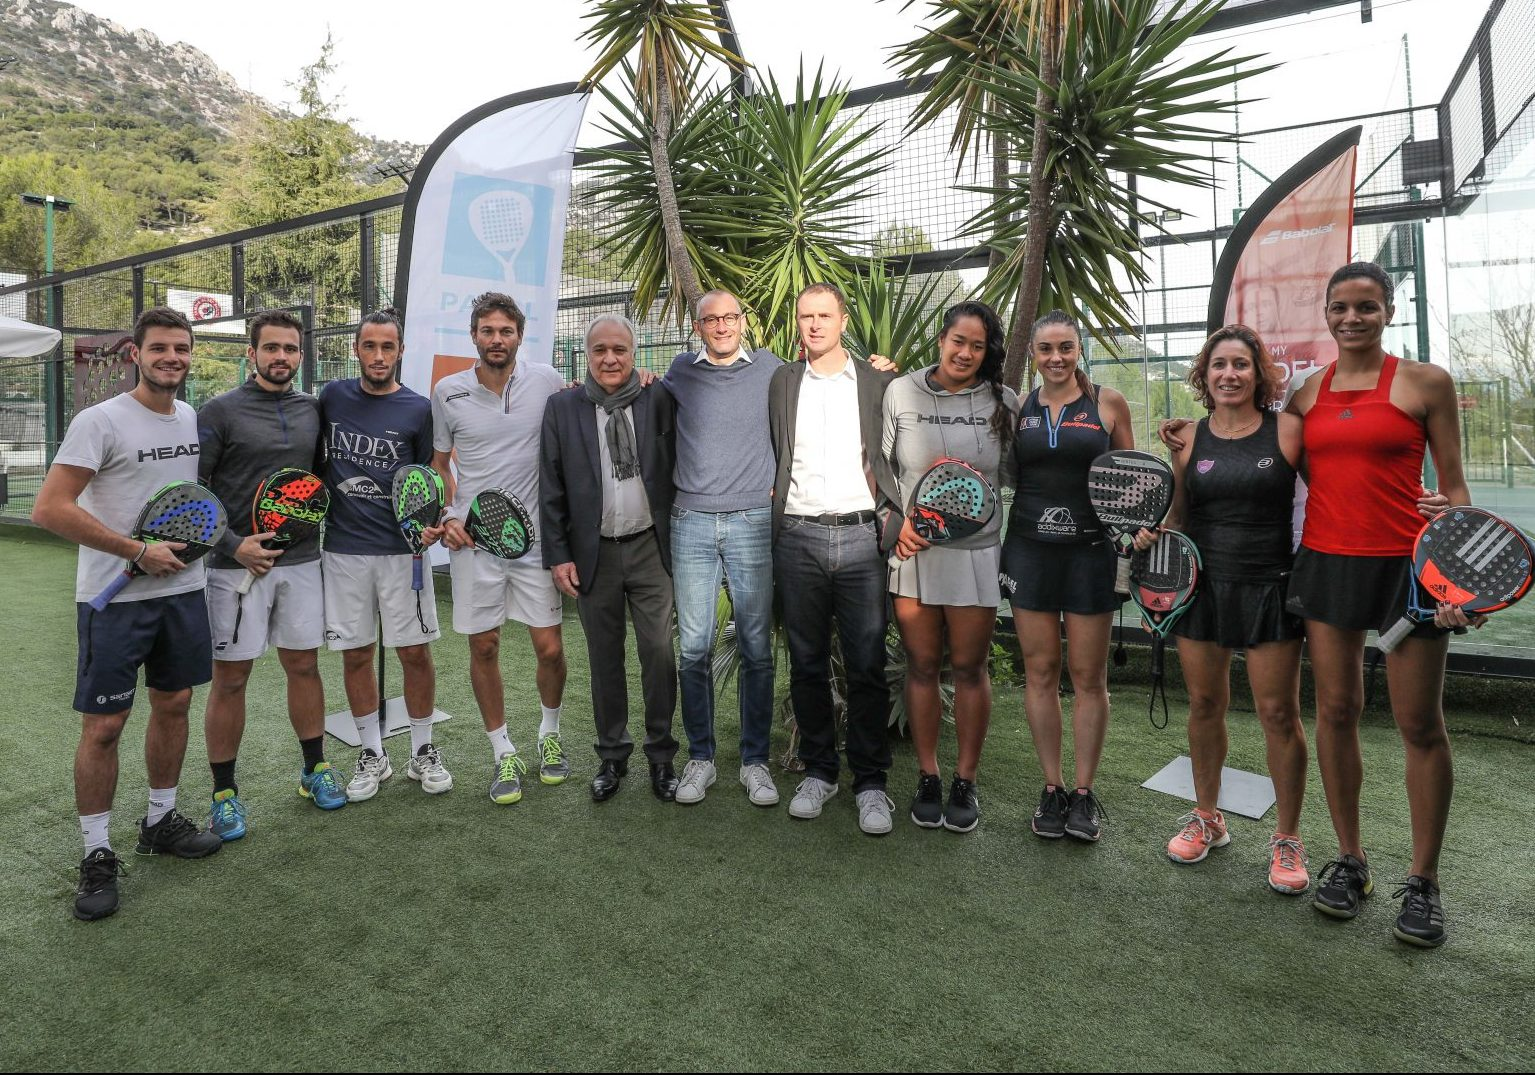 Le Masters My Padel Tour FFT by Babolat 2018 a tenu toutes ses promesses